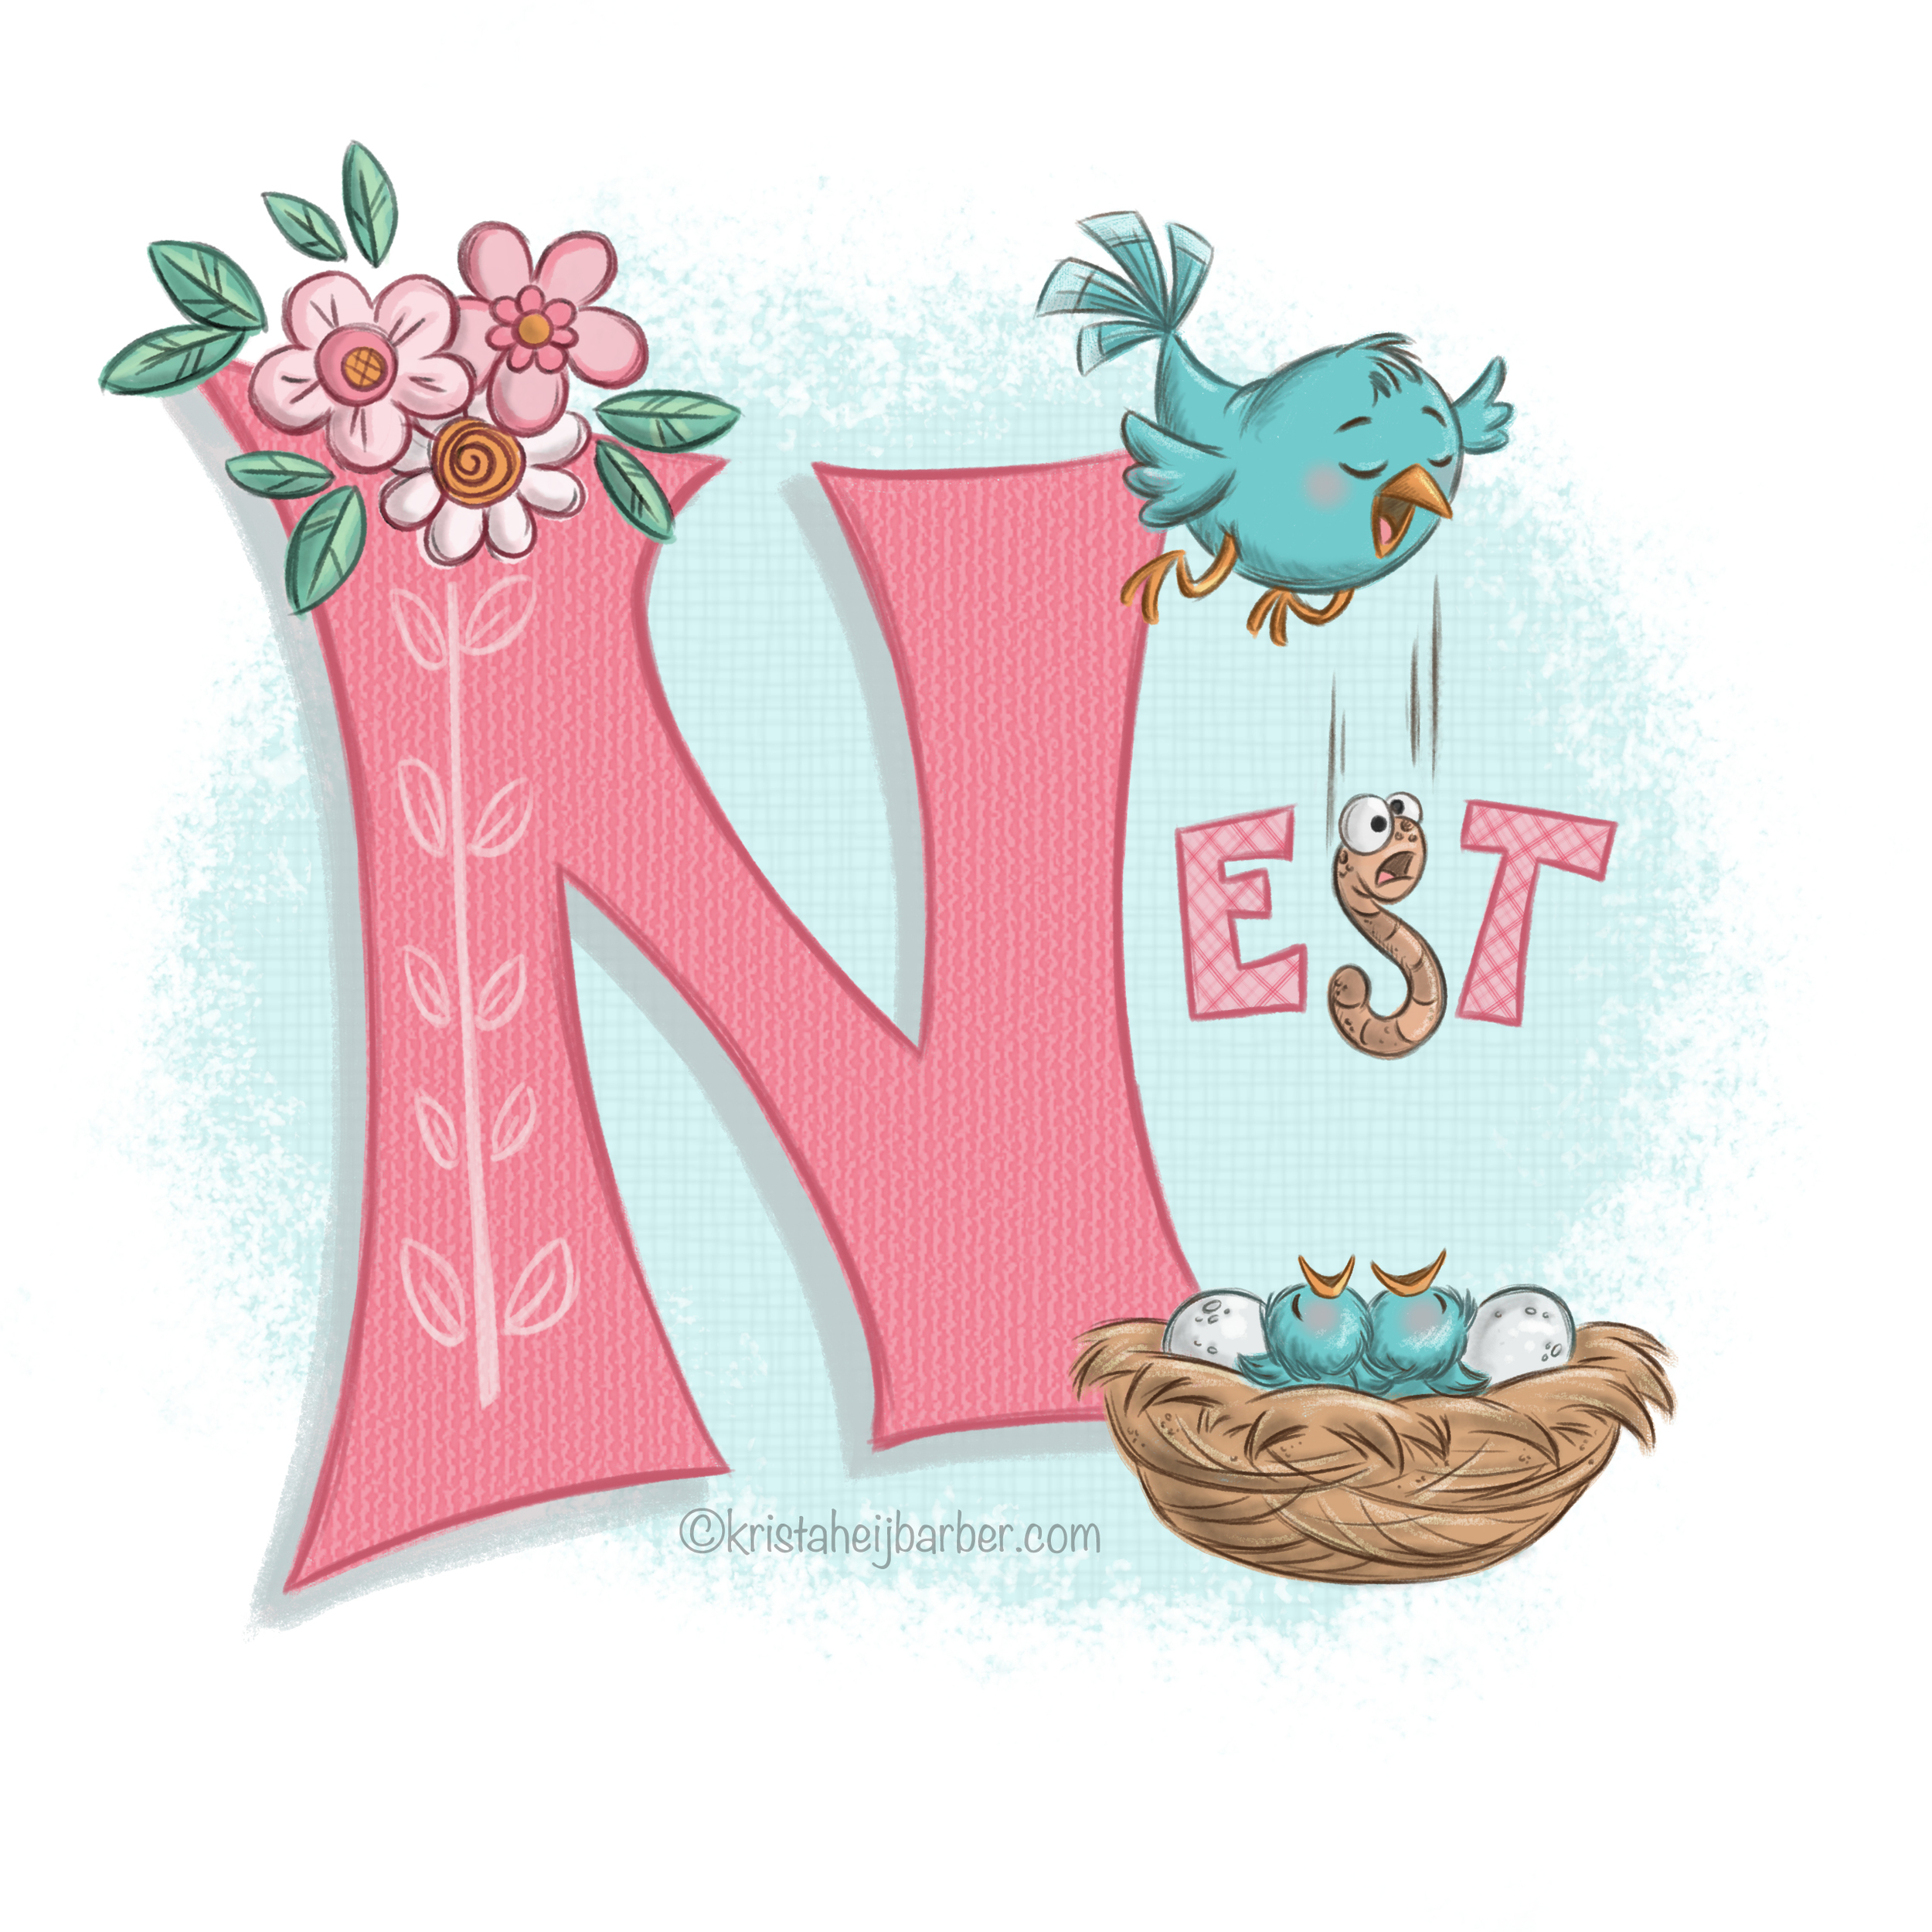 N is for Nest-2.jpg